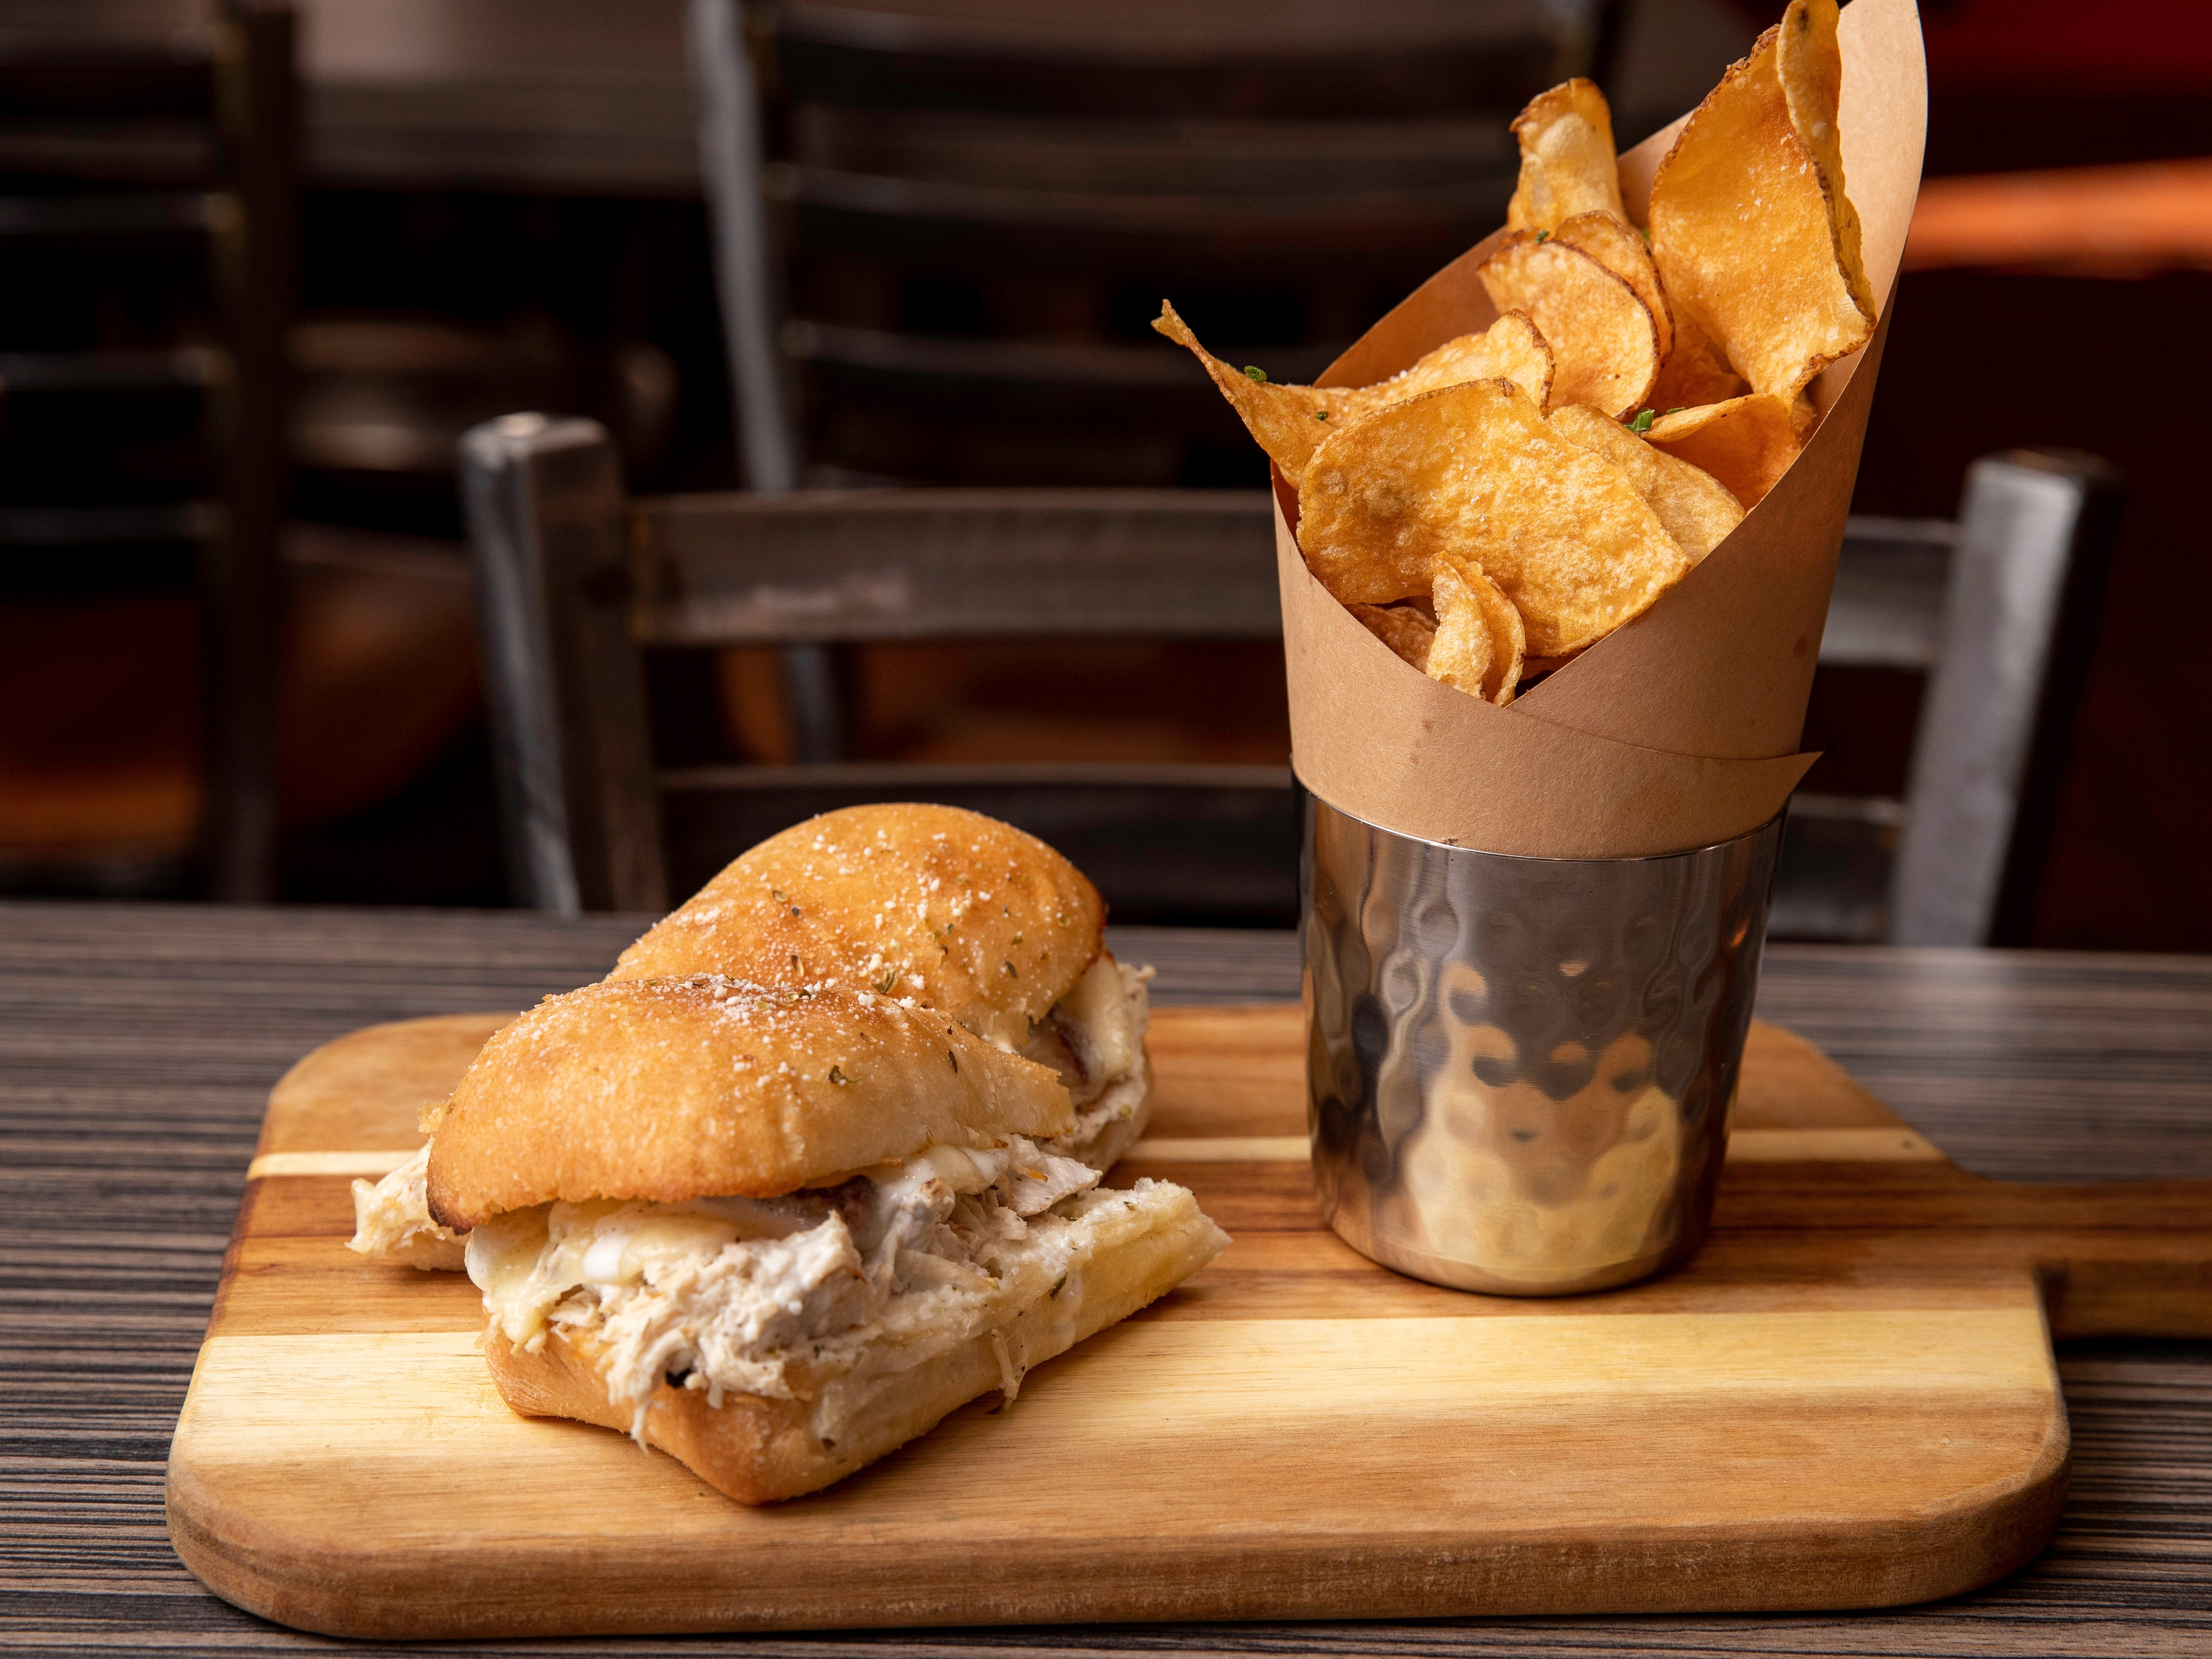 Roasted Chicken Sandwich (roasted chicken breast, house cured bacon, ranch, provolone cheese) with house made potato chips at Butchertown Pizza Hall, Wednesday, Nov. 7, 2018 in Louisville Ky.